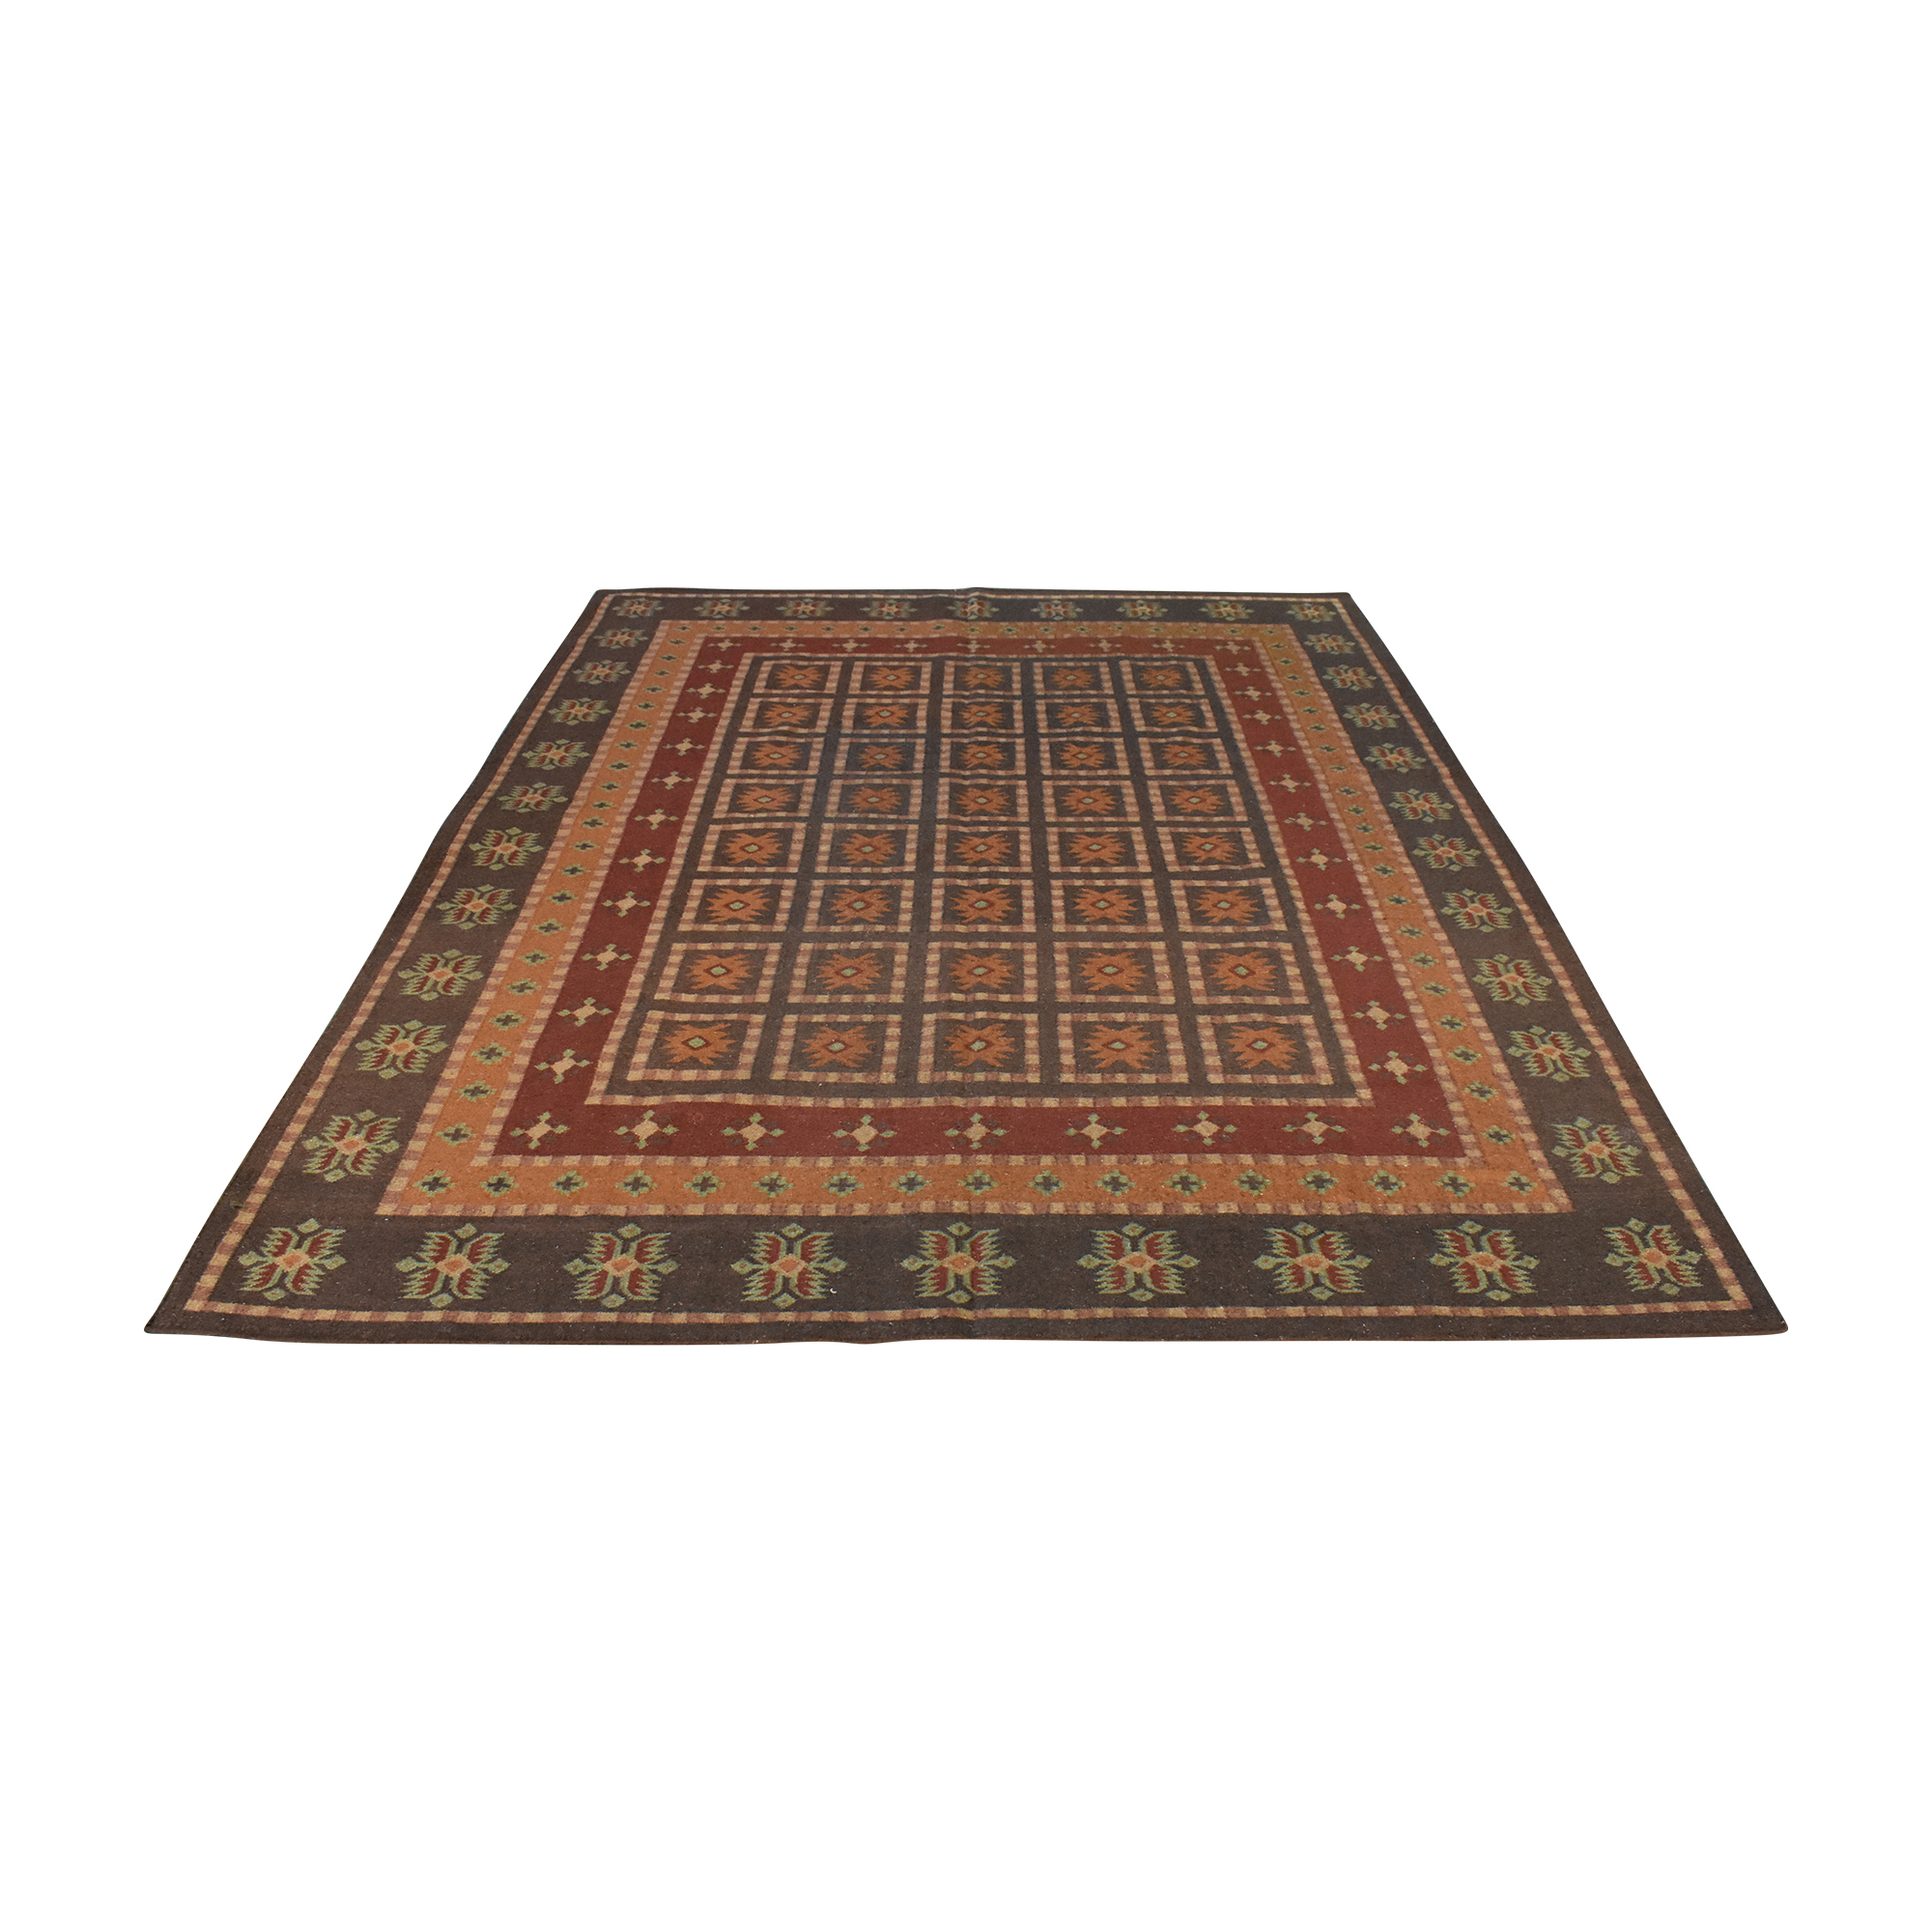 Pottery Barn Pottery Barn Patterned Area Rug dimensions